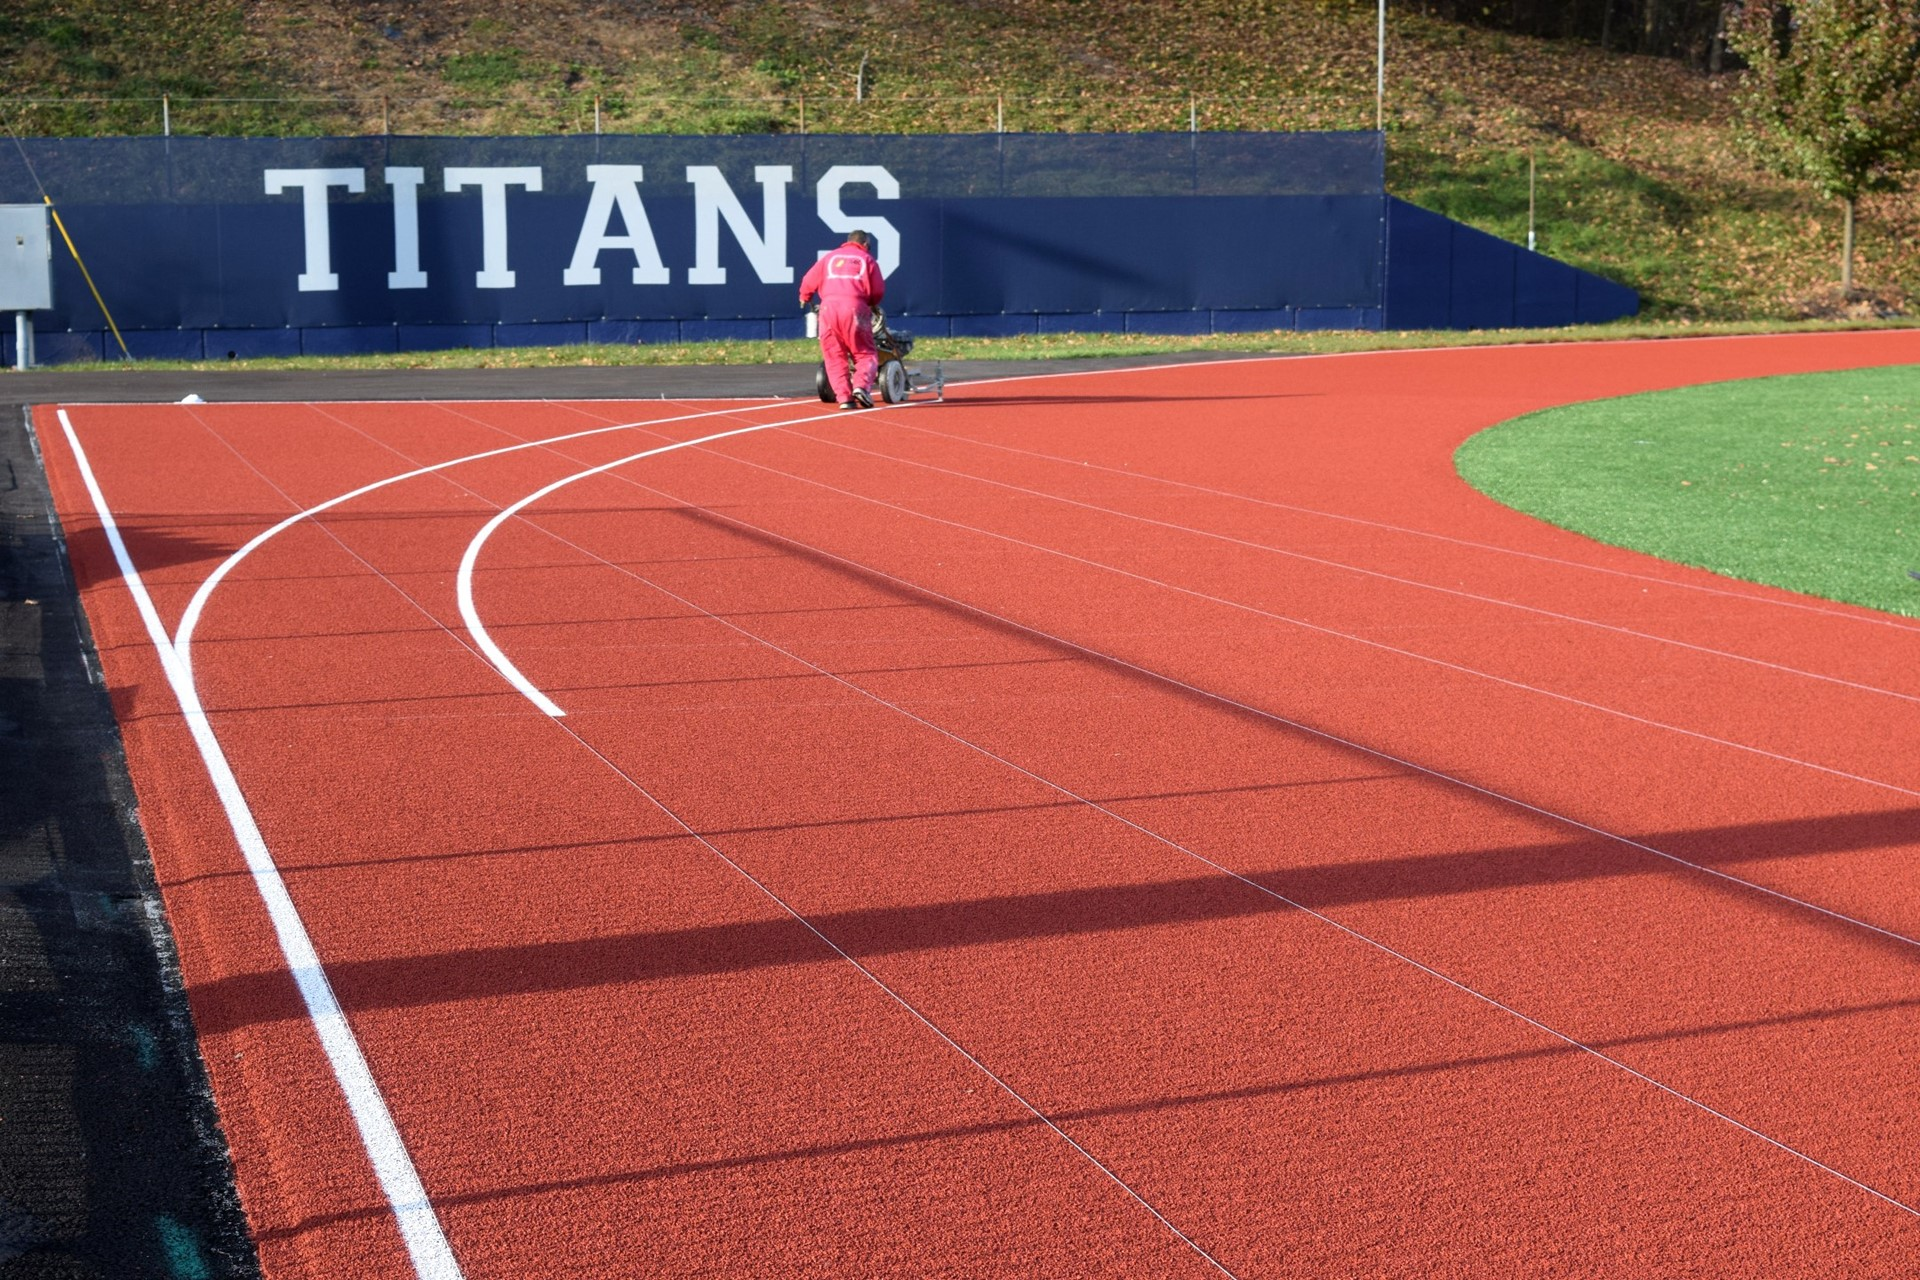 Lines being painted on the track surface